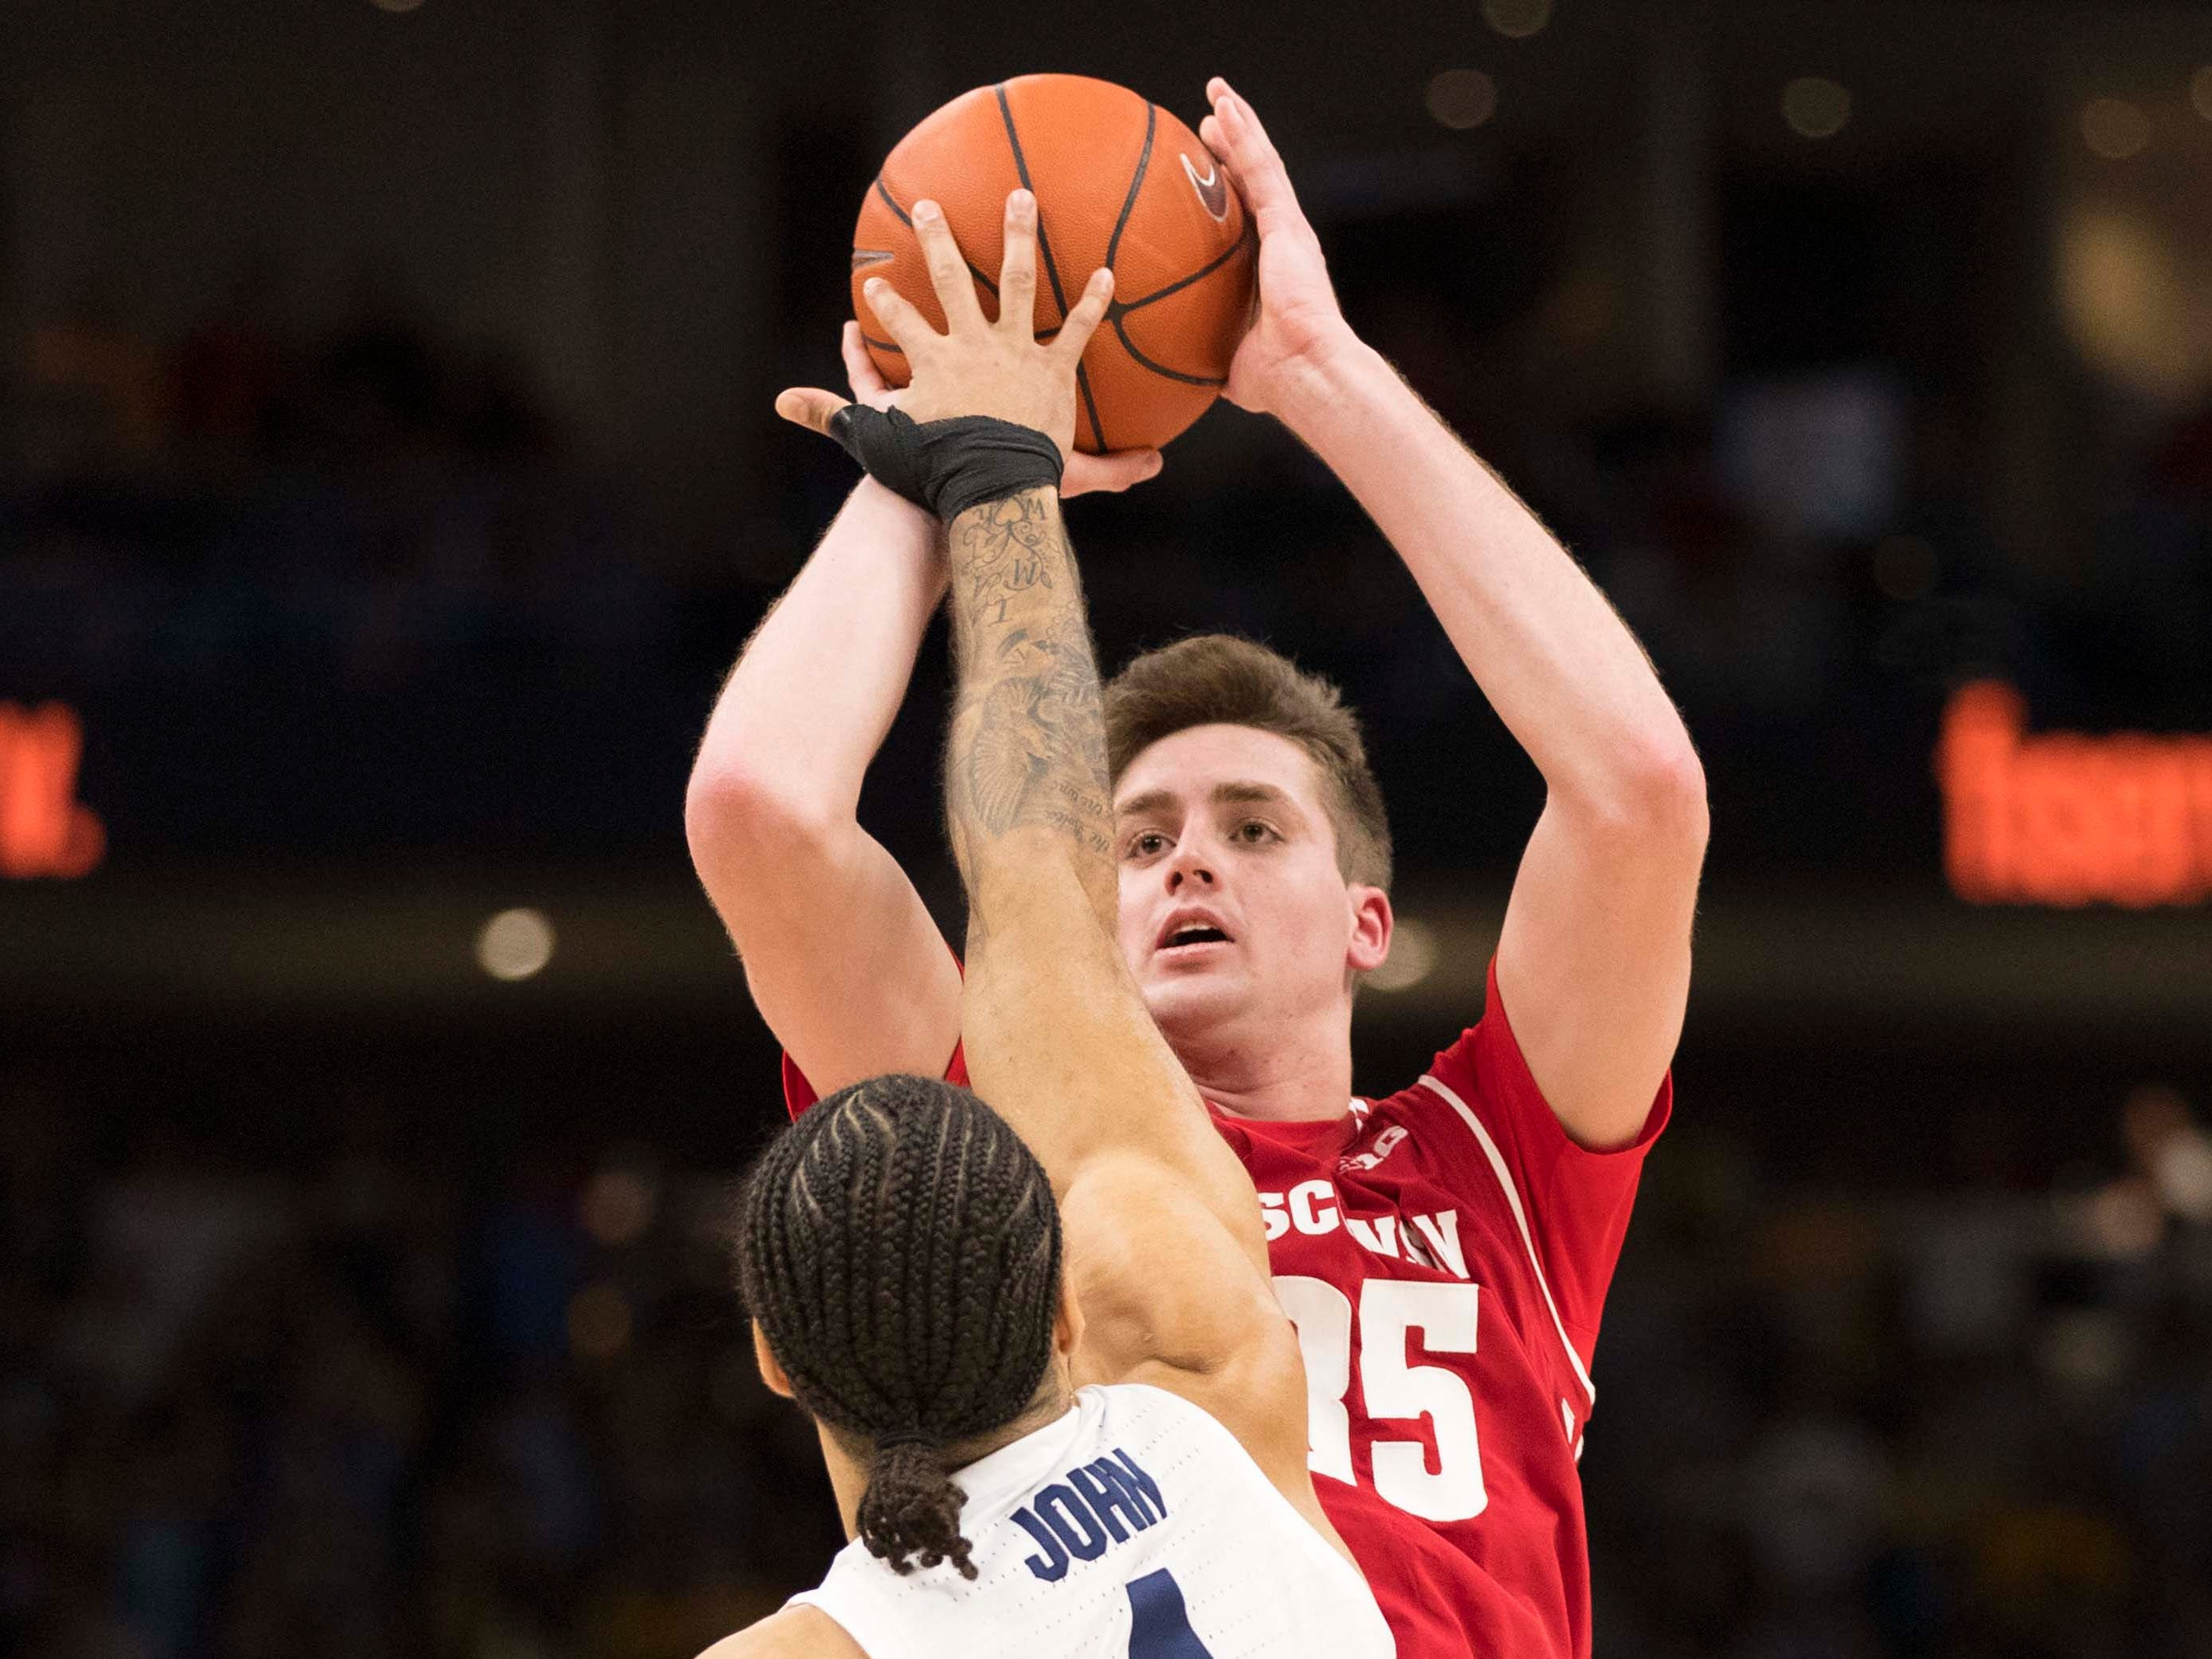 Wisconsin Badgers forward Nate Reuvers shoots against Marquette Golden Eagles forward Theo John.